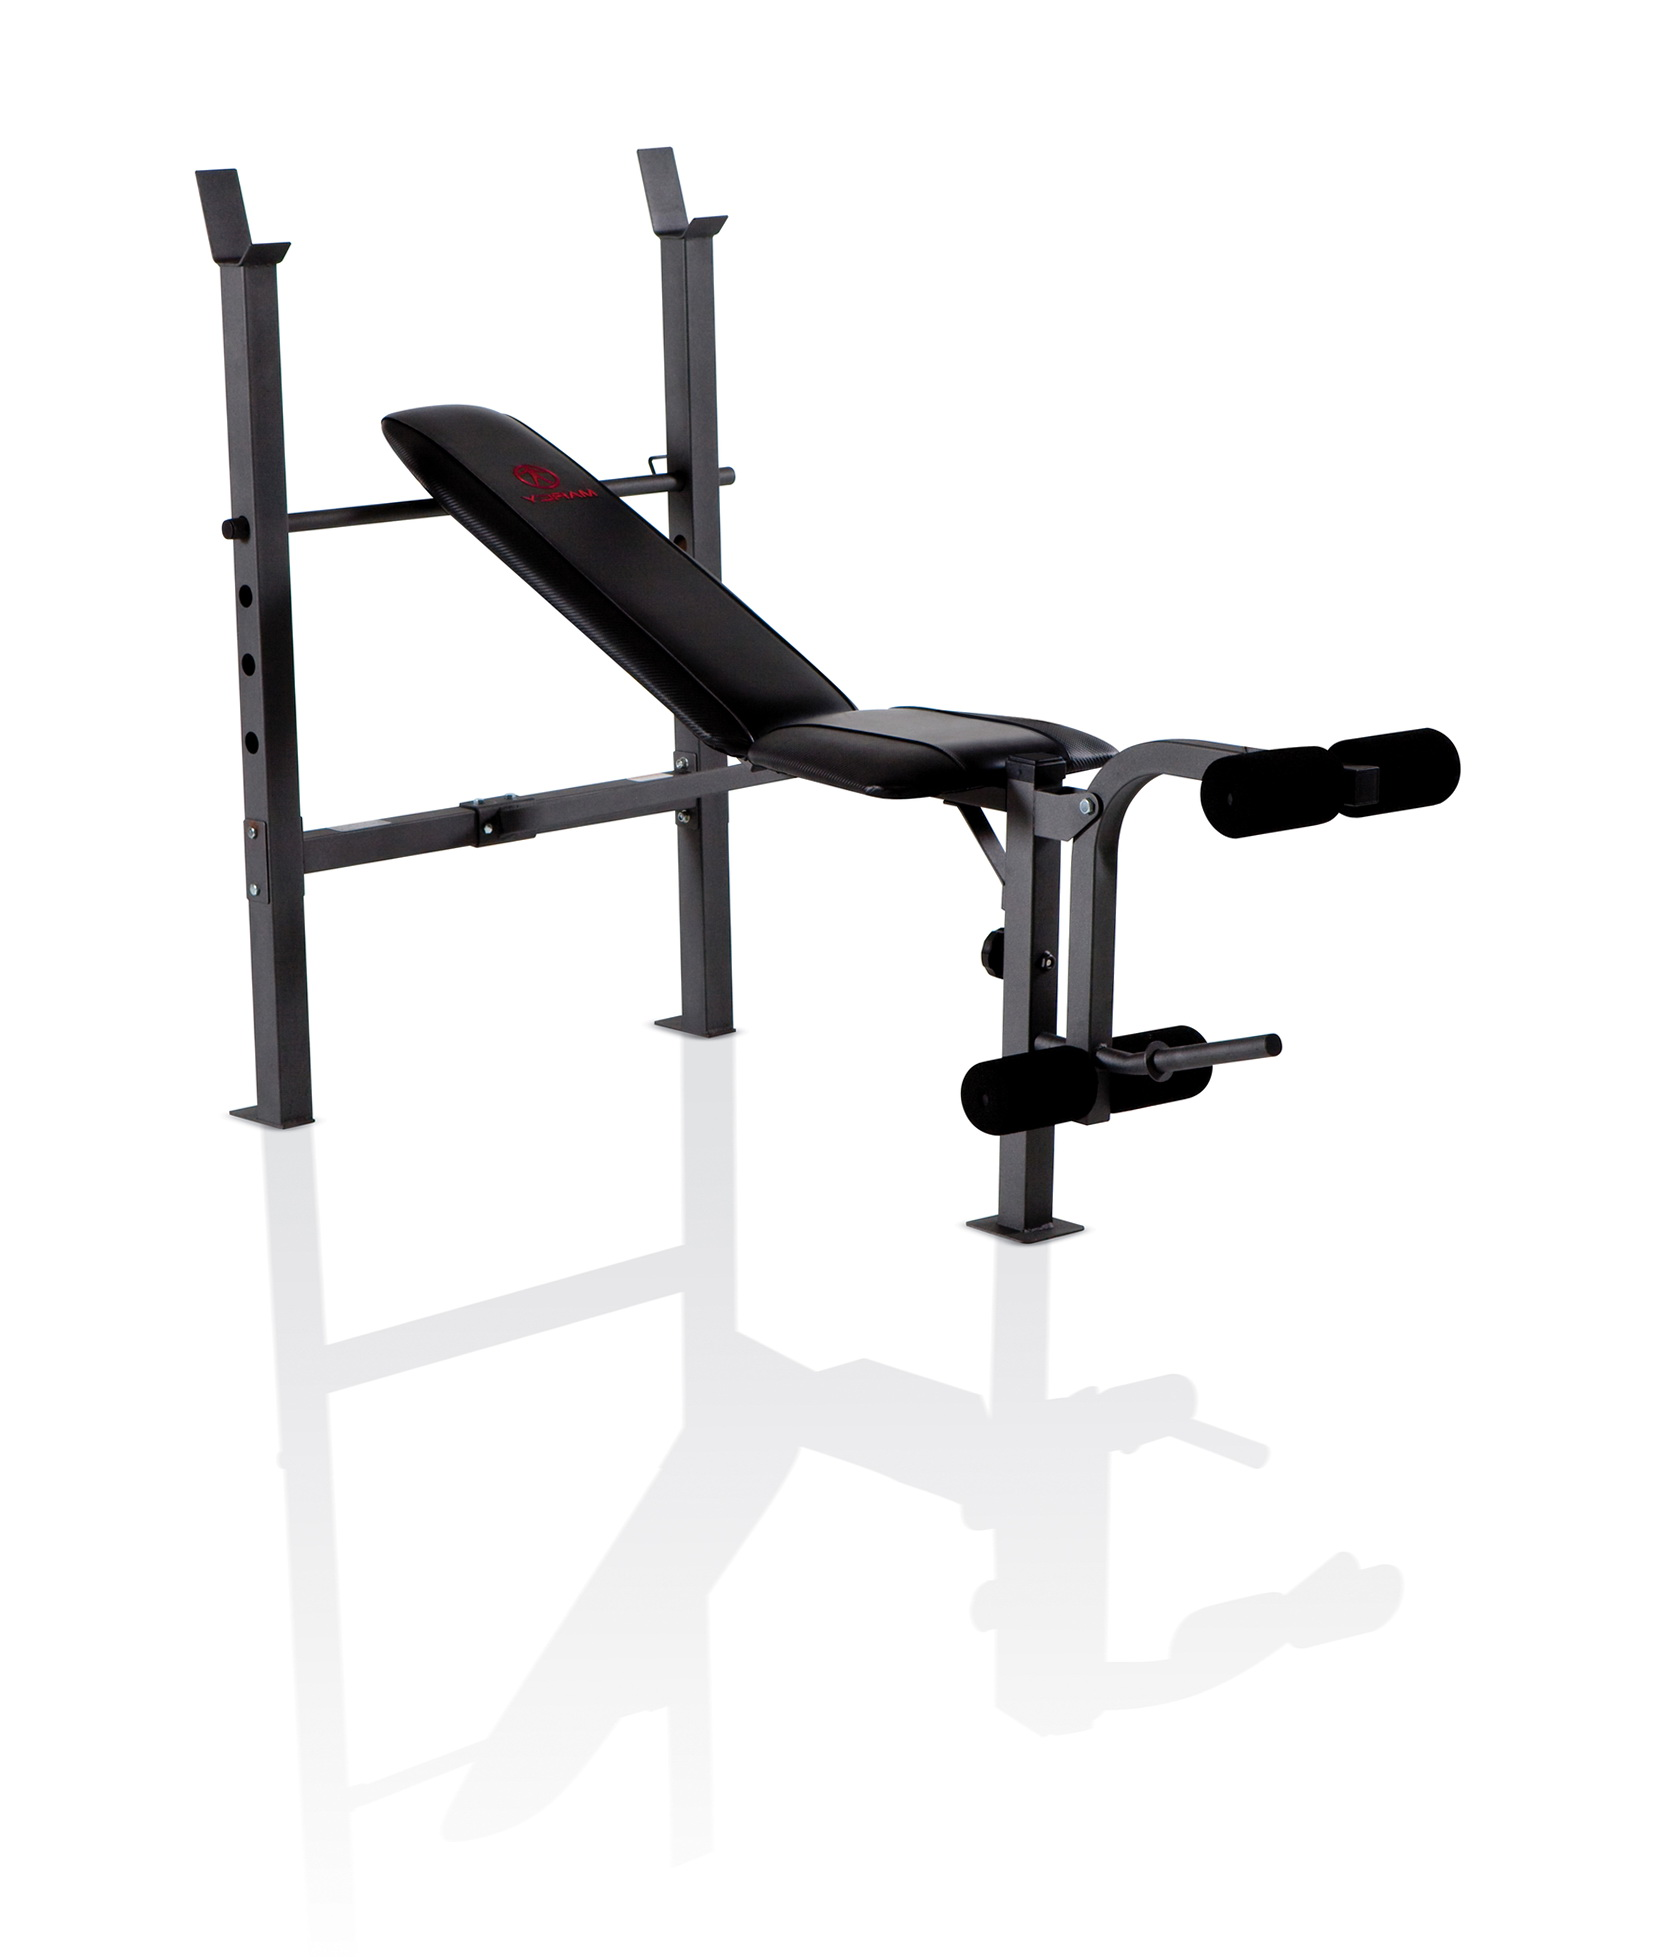 Weight Benches For Sale Walmart Home Design Ideas